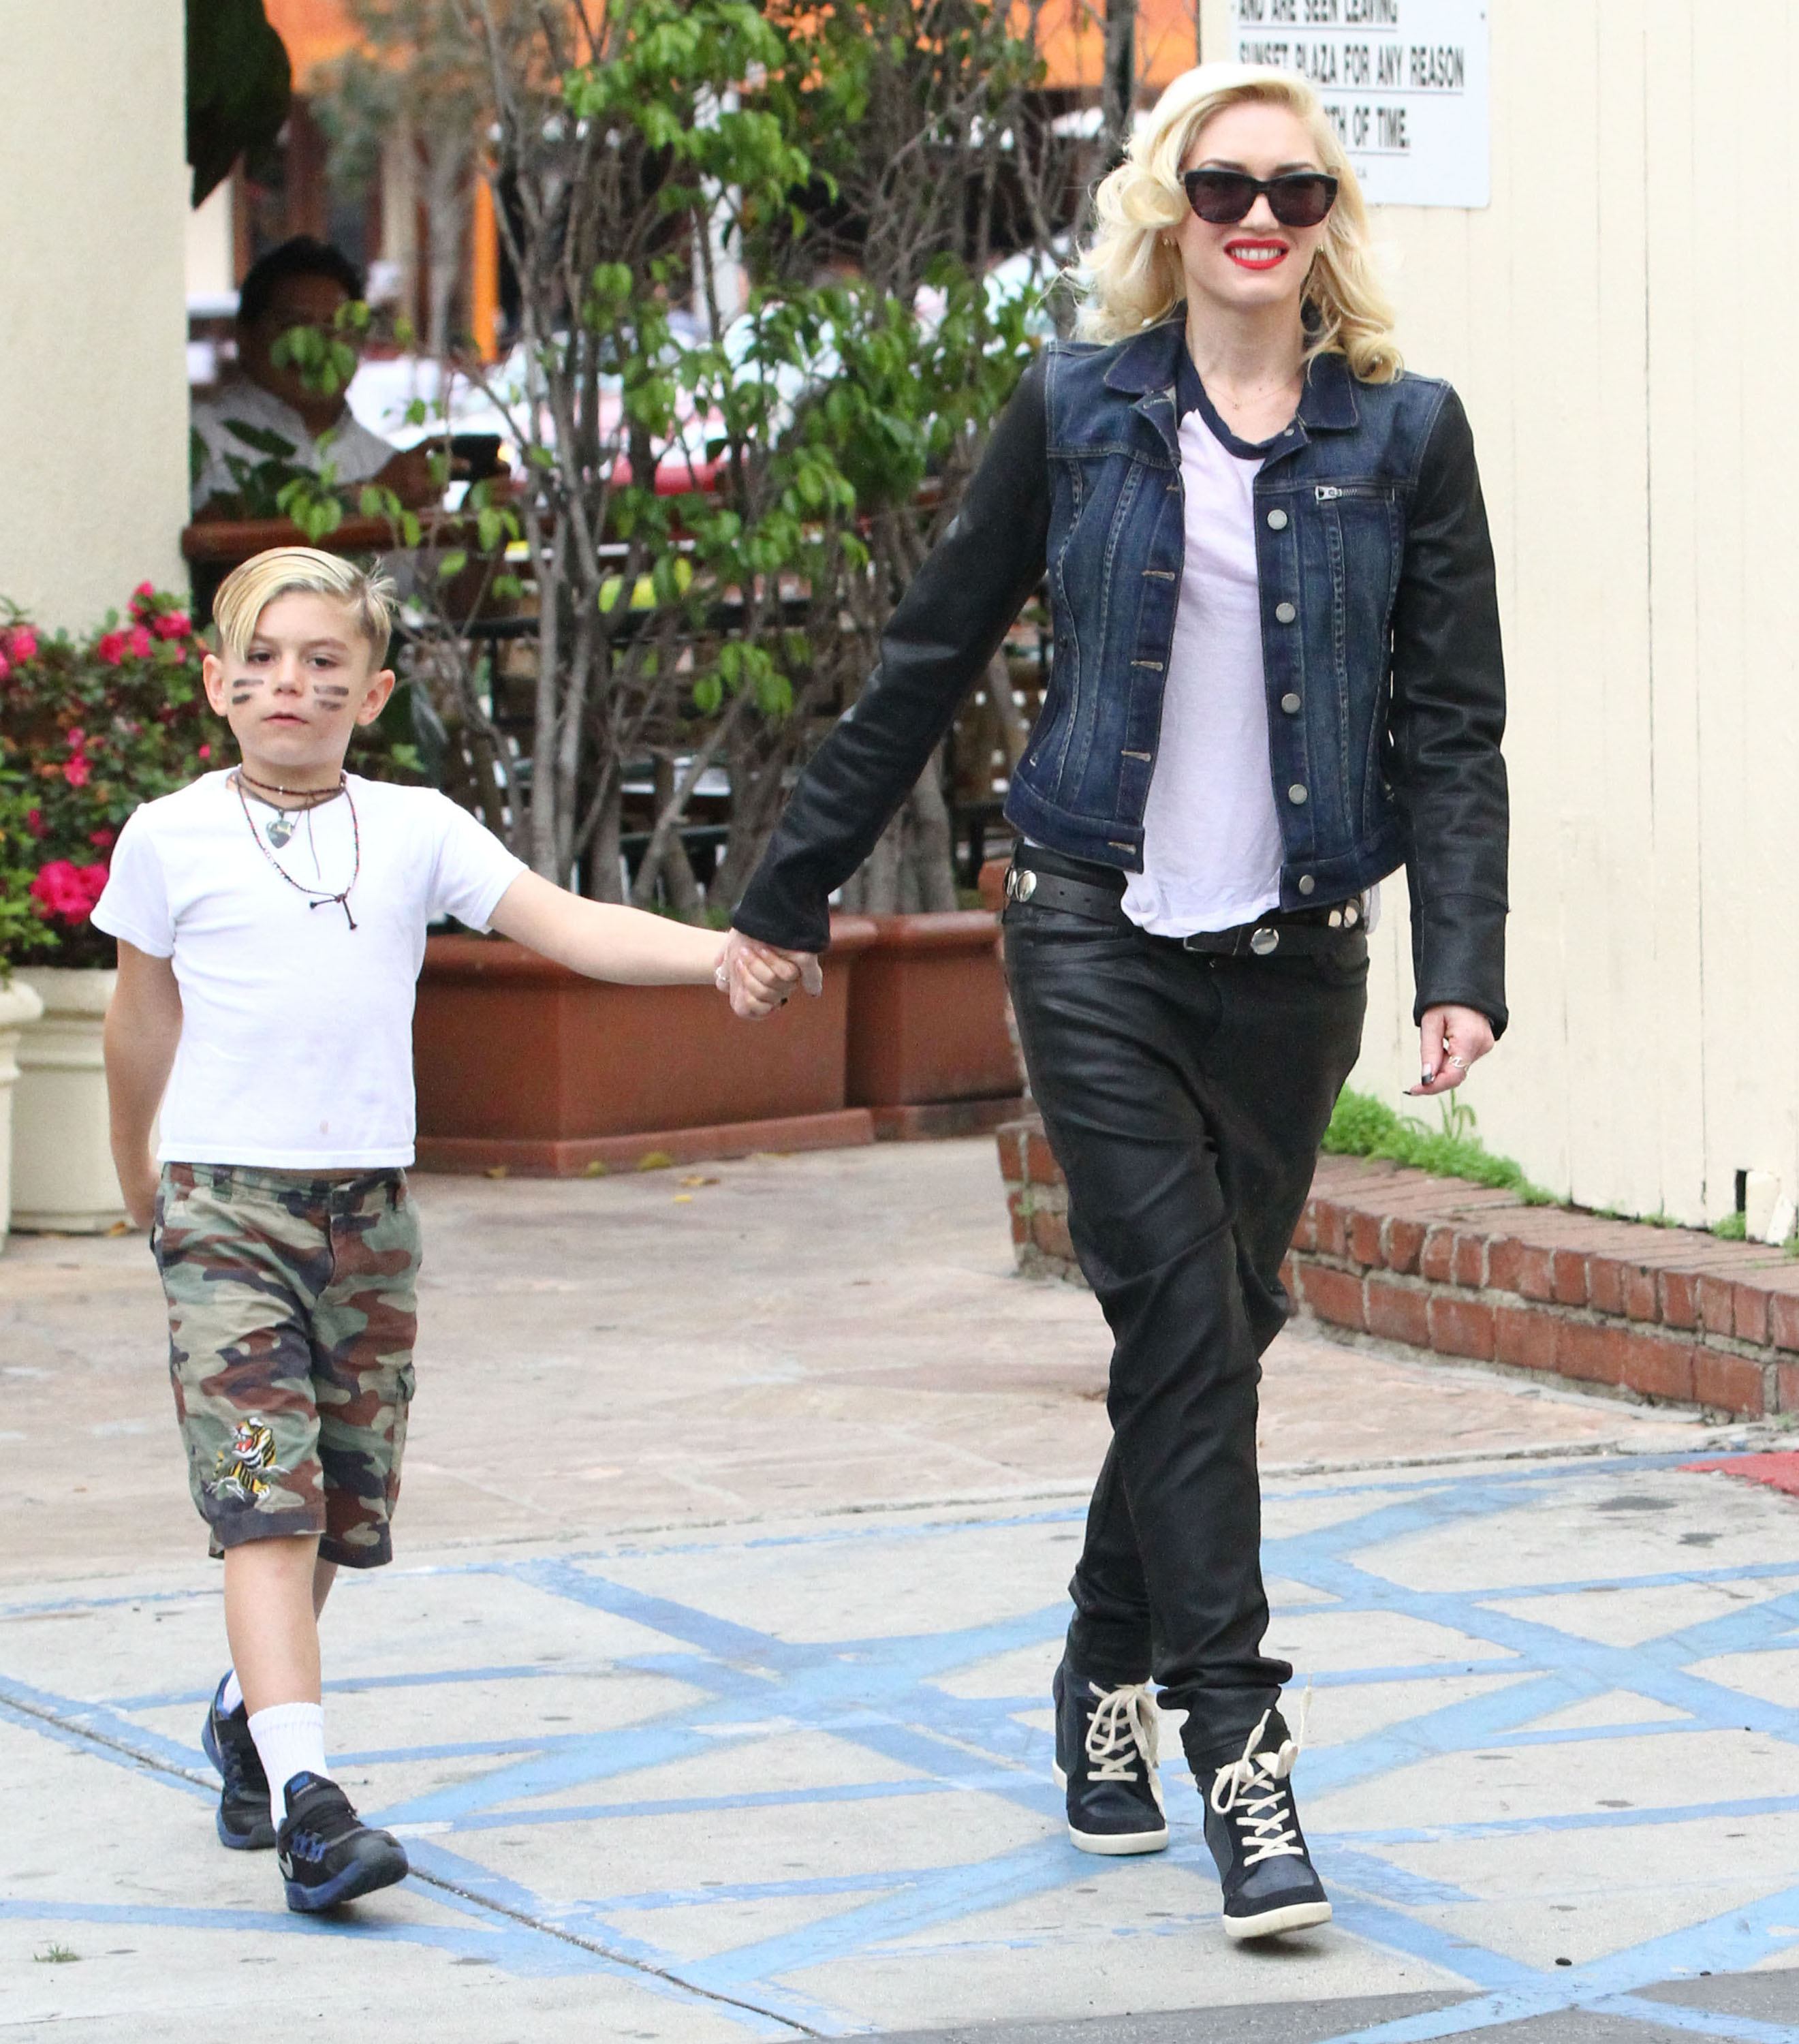 Gwen Stefani took her son, Kingston Rossdale, by the hand as they left a lunch date in LA.